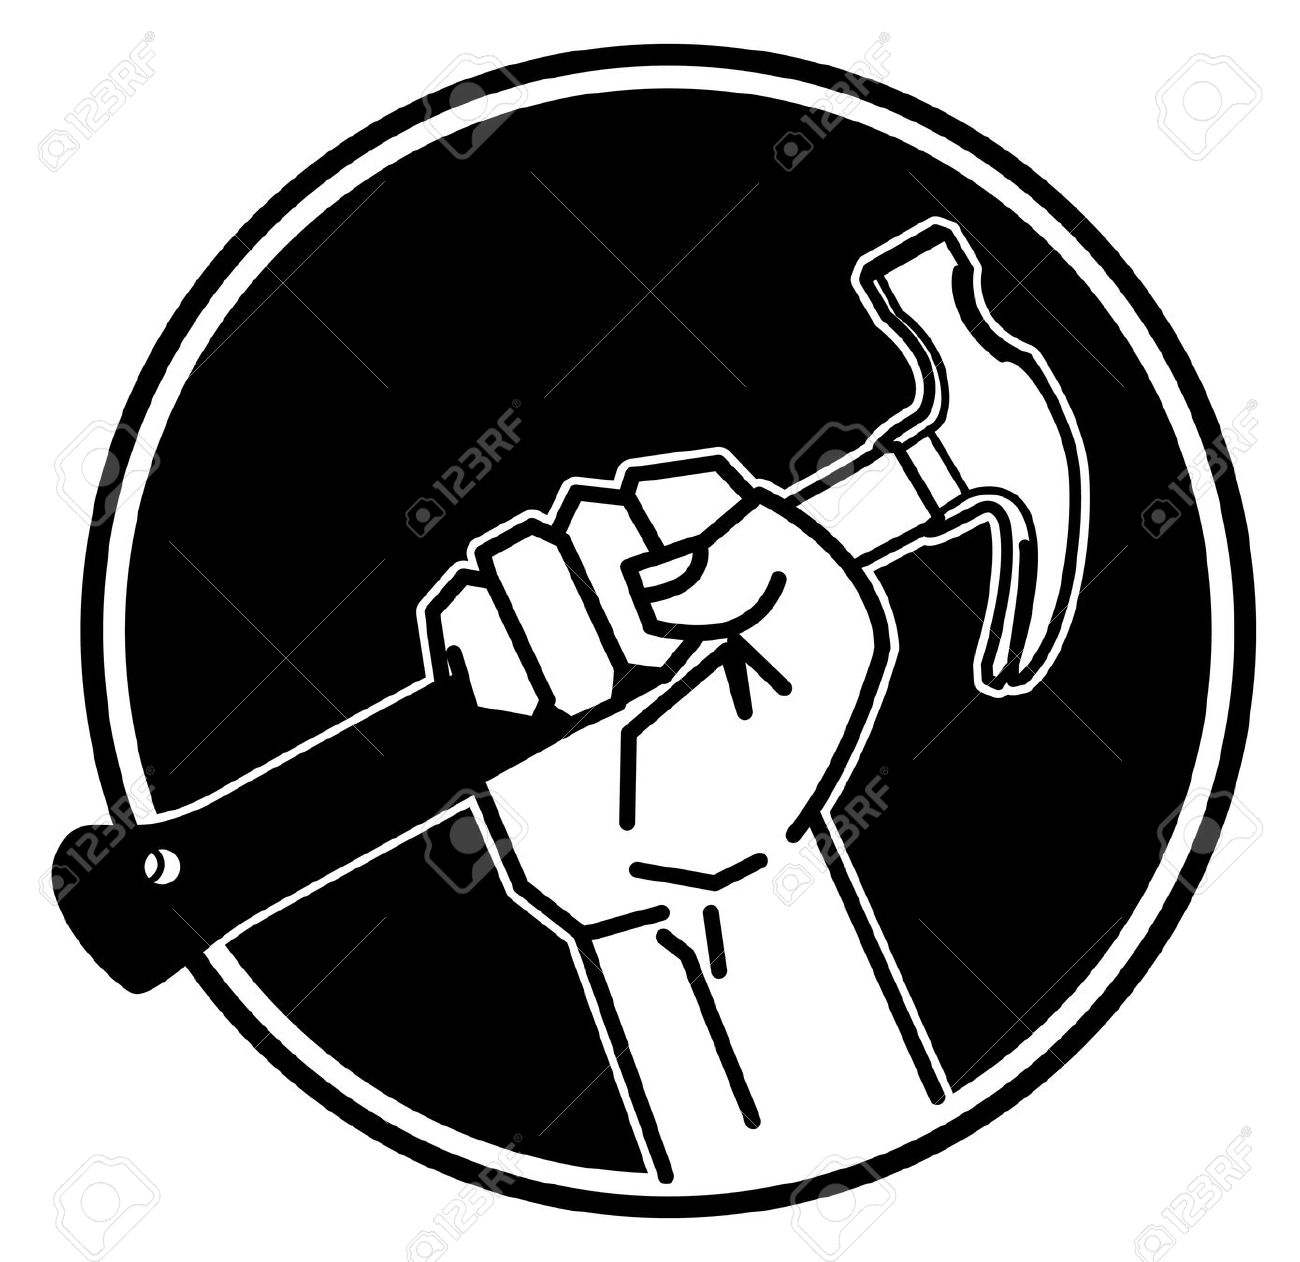 555 Hand Holding Hammer Stock Vector Illustration And Royalty Free. - Arm And Hammer Vector, Transparent background PNG HD thumbnail